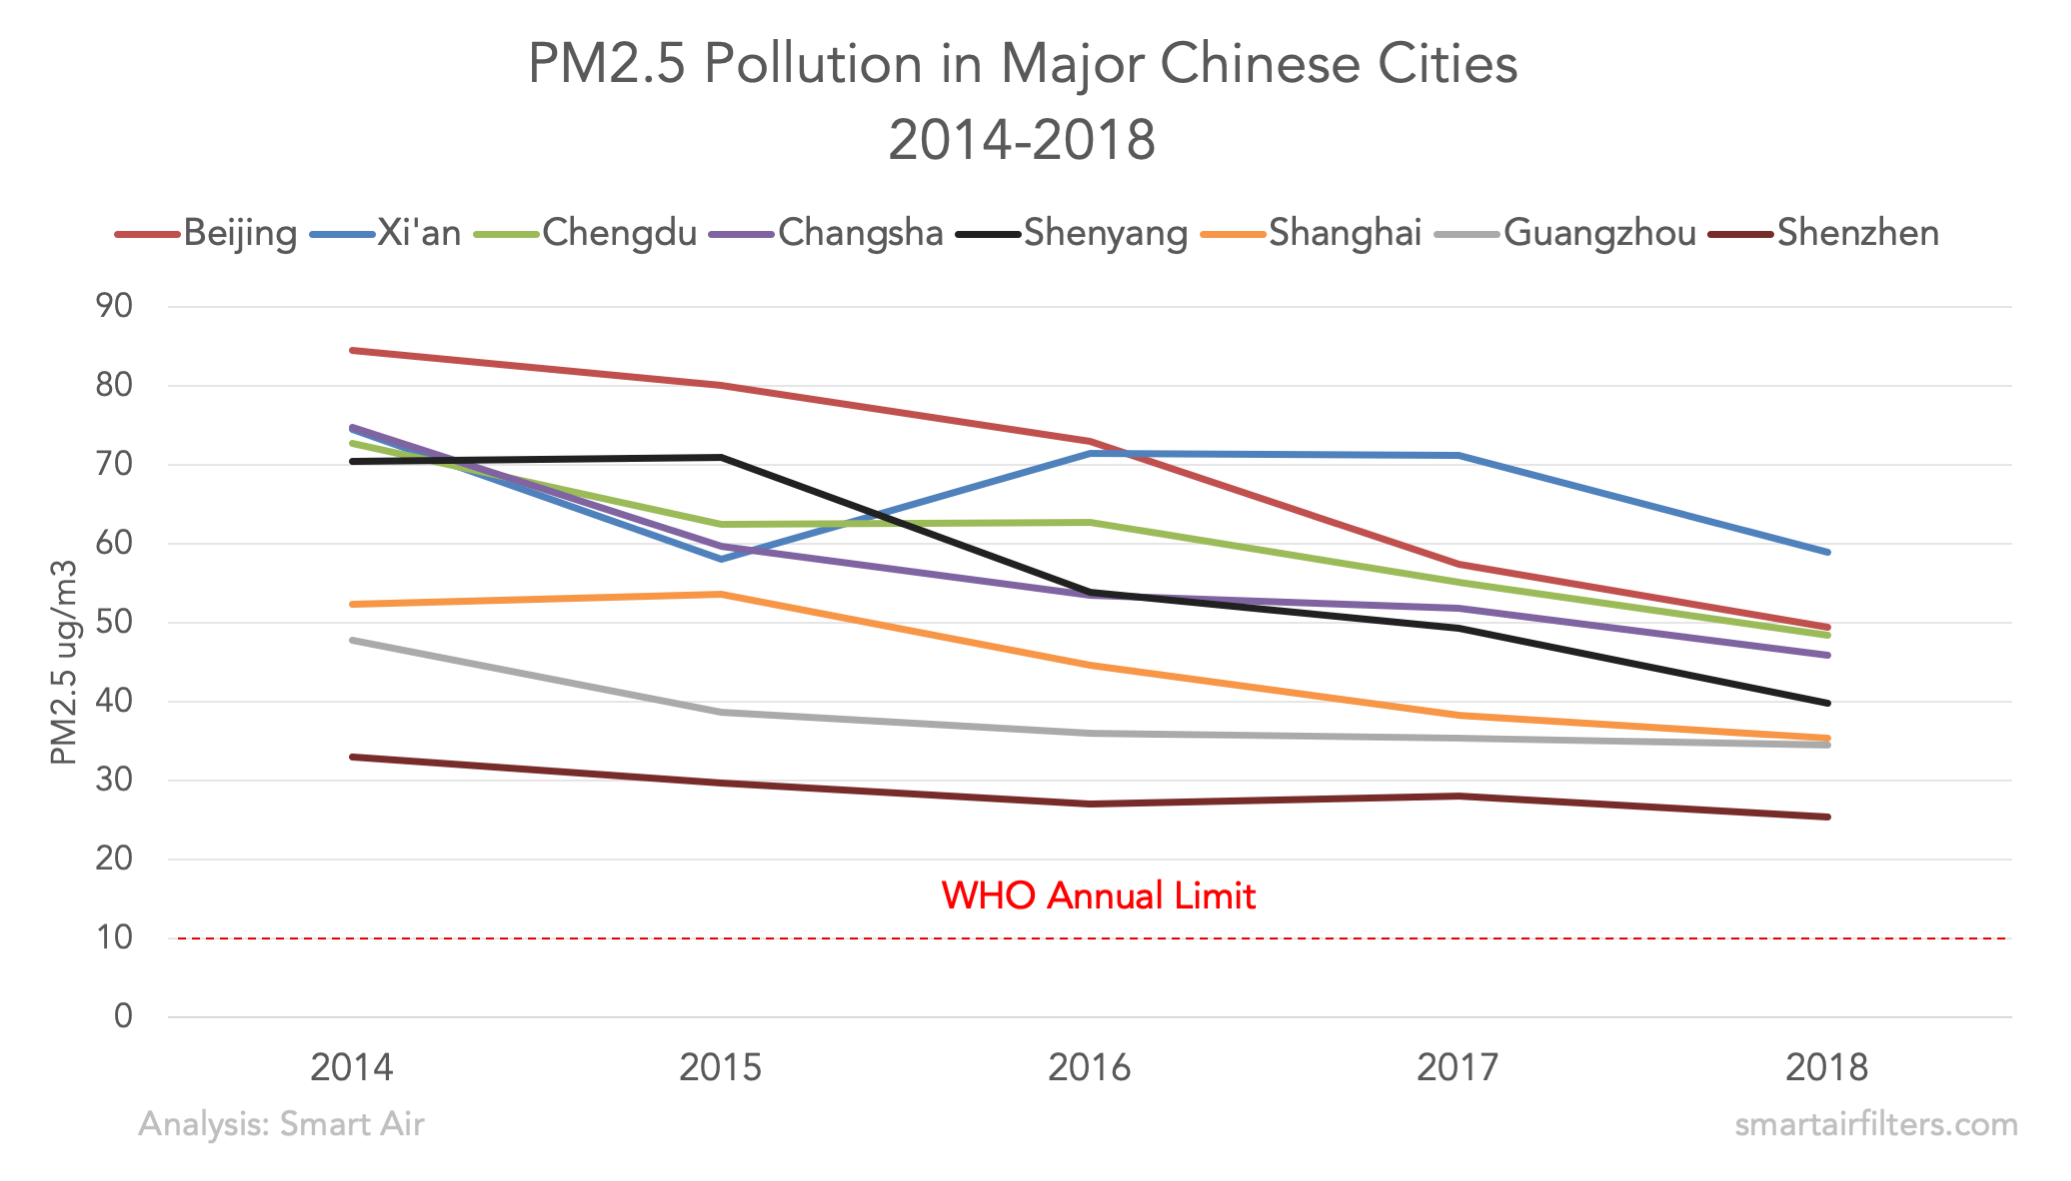 PM2.5 pollution in major Chinese cities